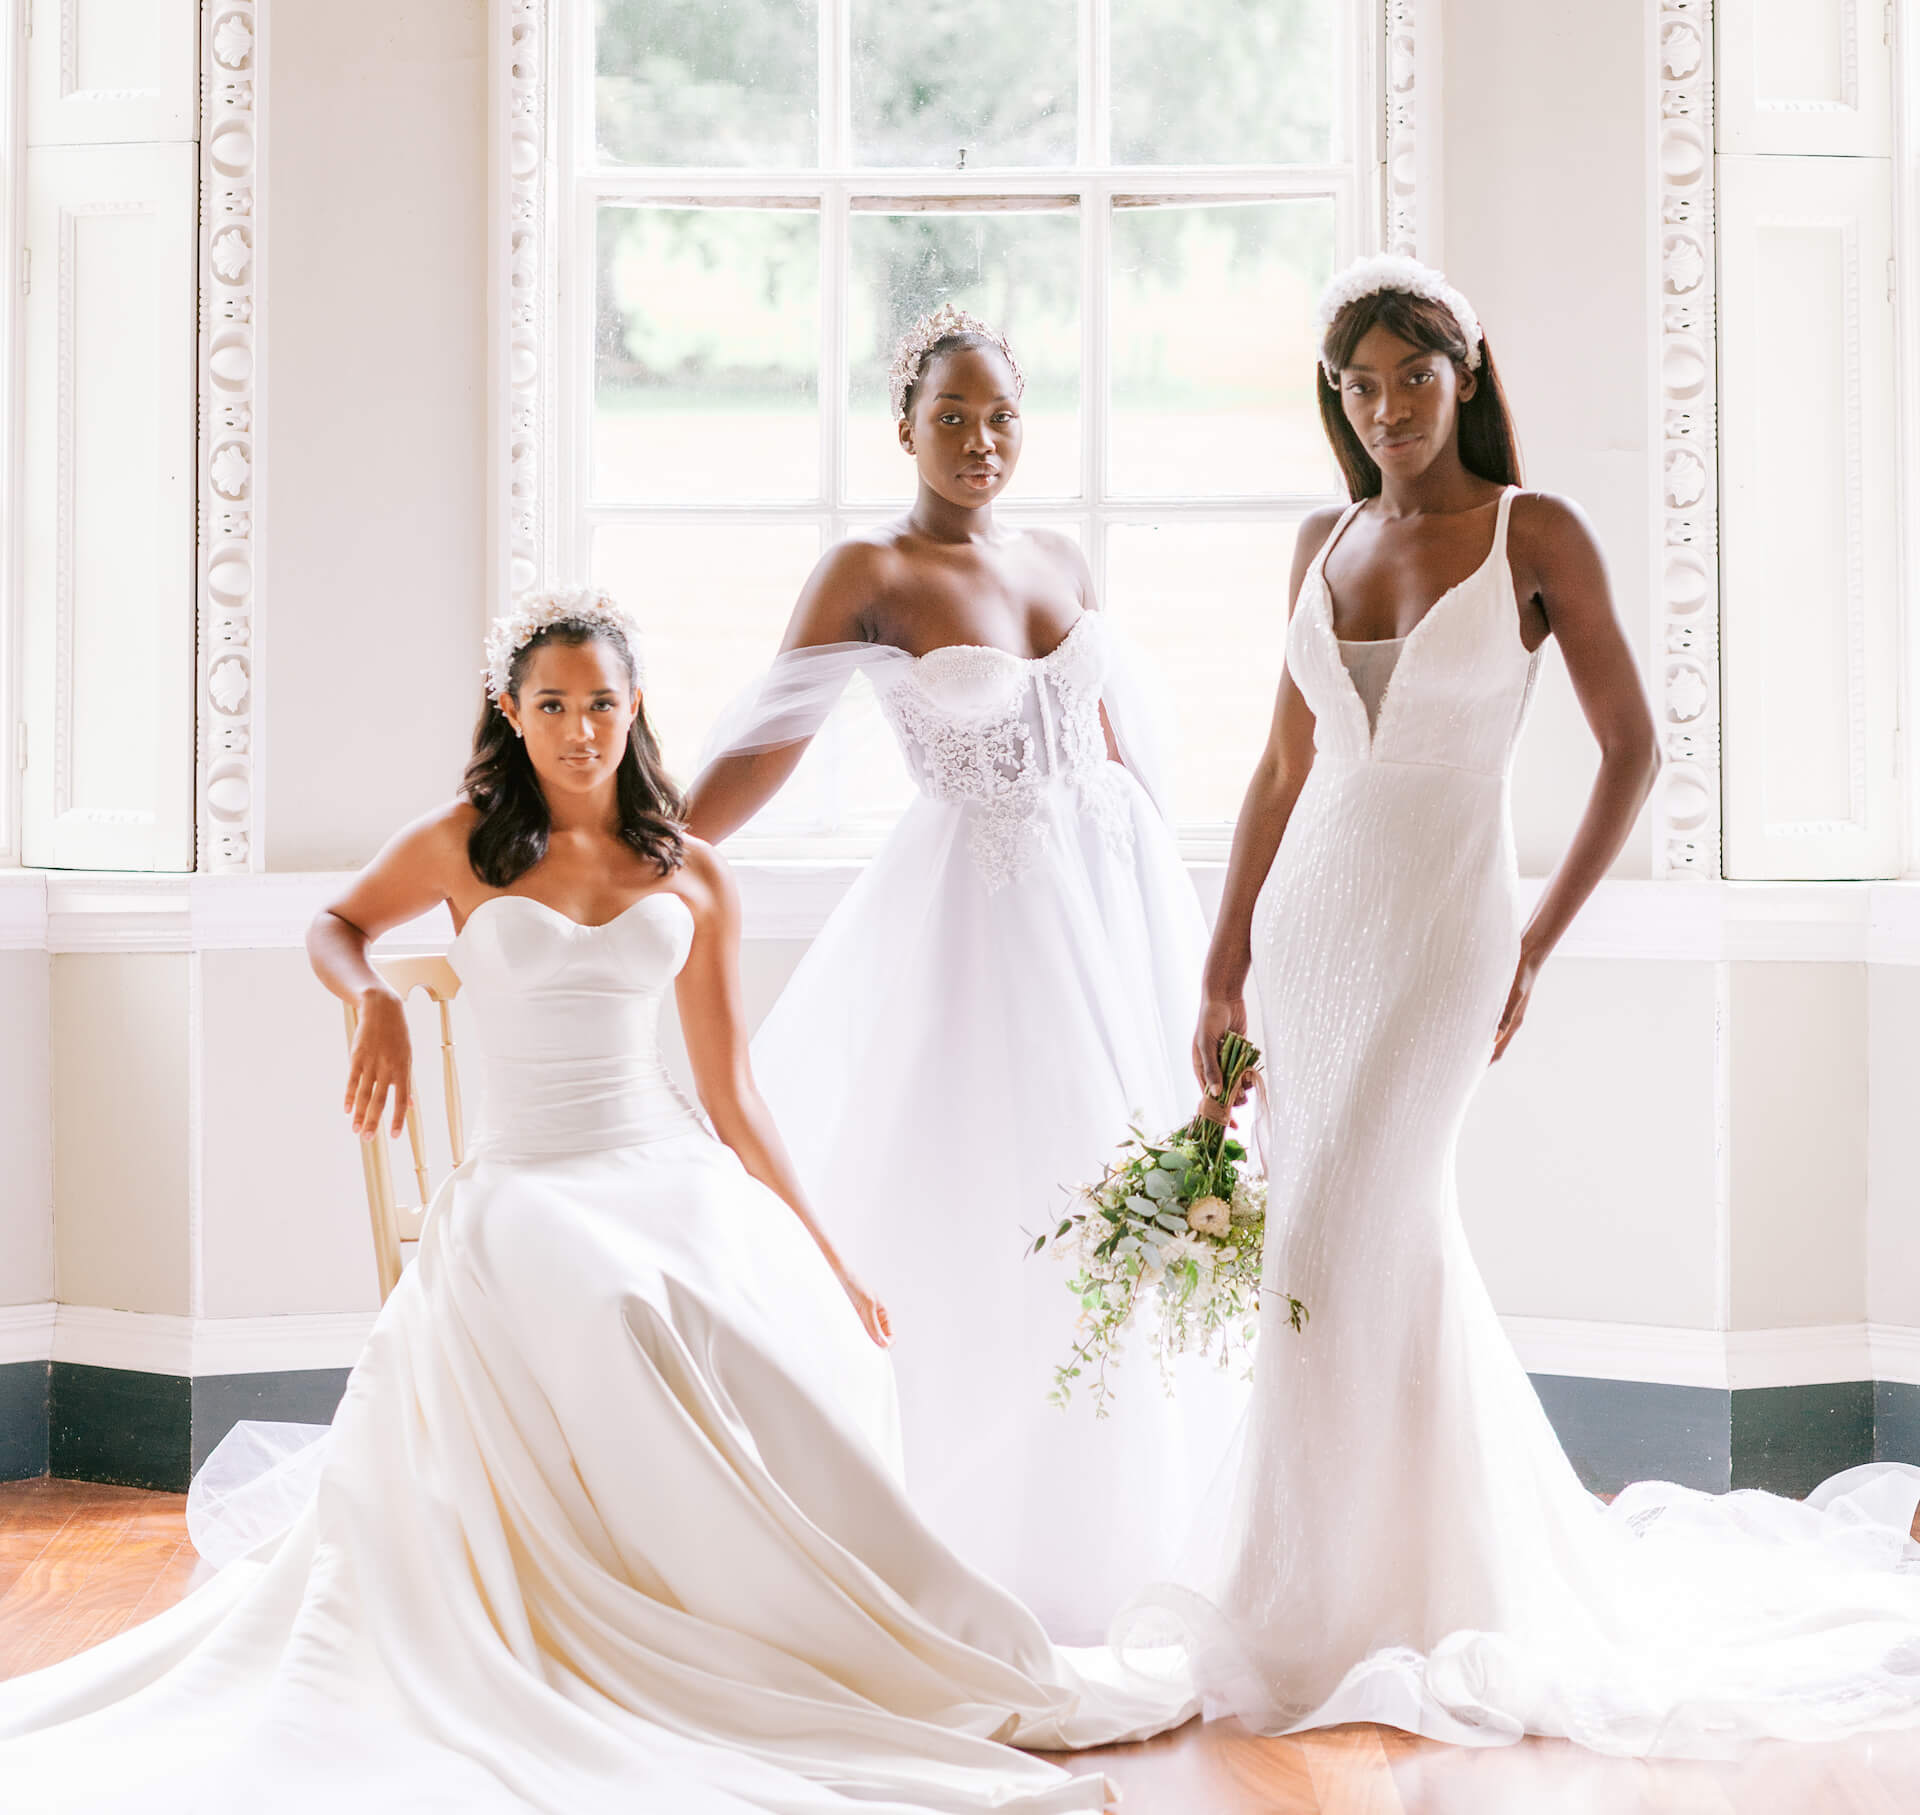 three brides wearing beautifully handcrafted bridal couture pieces with headpieces. the bride on the left is seated on a chair, the bride in the middle is holding on to the chair and the bride on the right is elegantly posed with a bouquet in her right hand. behind them is a large vertical window.